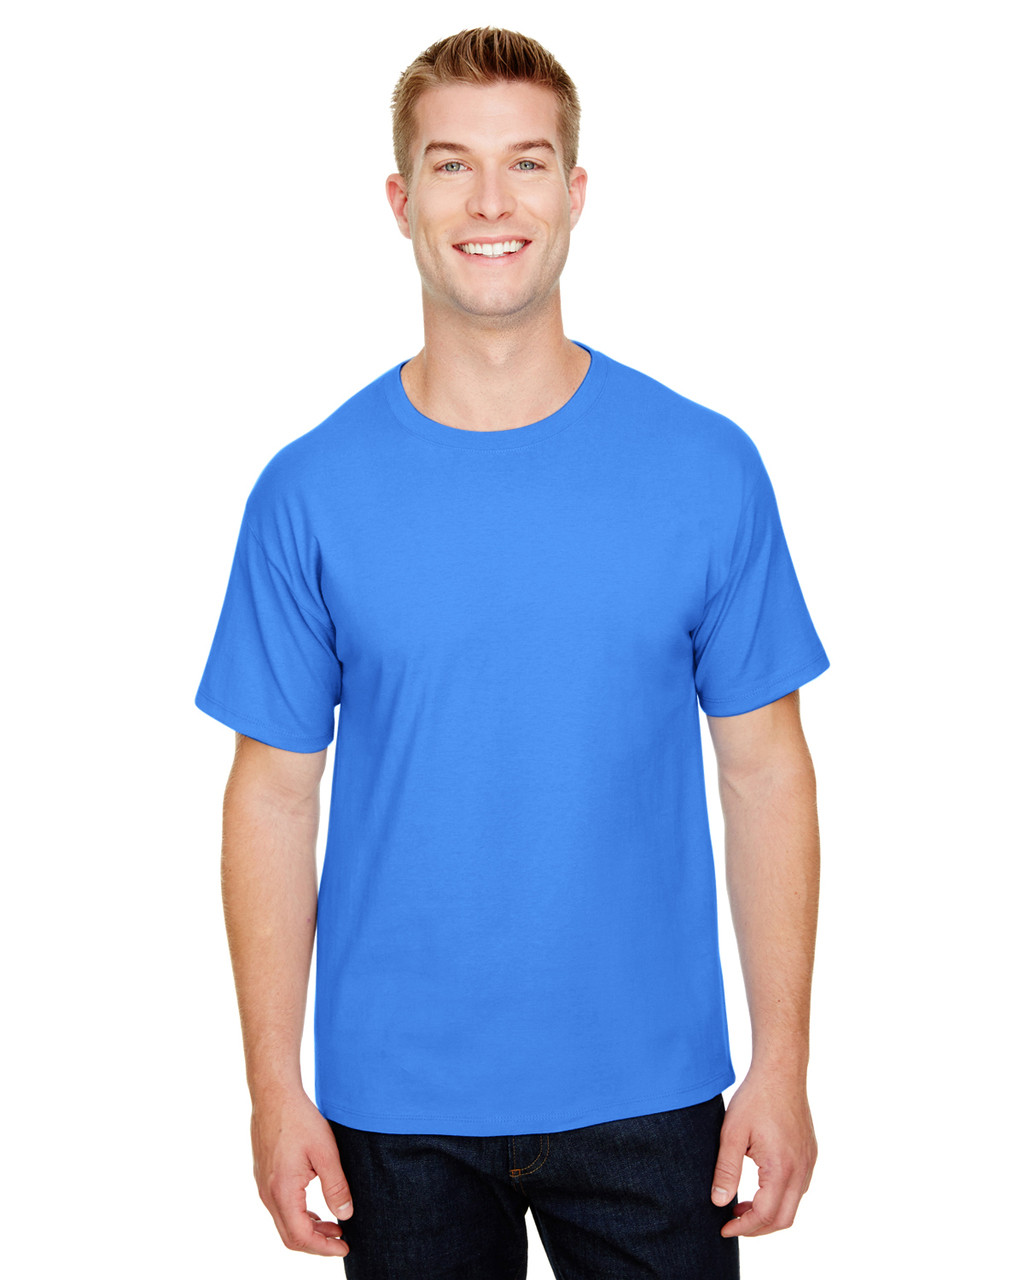 Bluebell Breeze - CP10 Champion Adult Ringspun Cotton T-Shirt   BlankClothing.ca